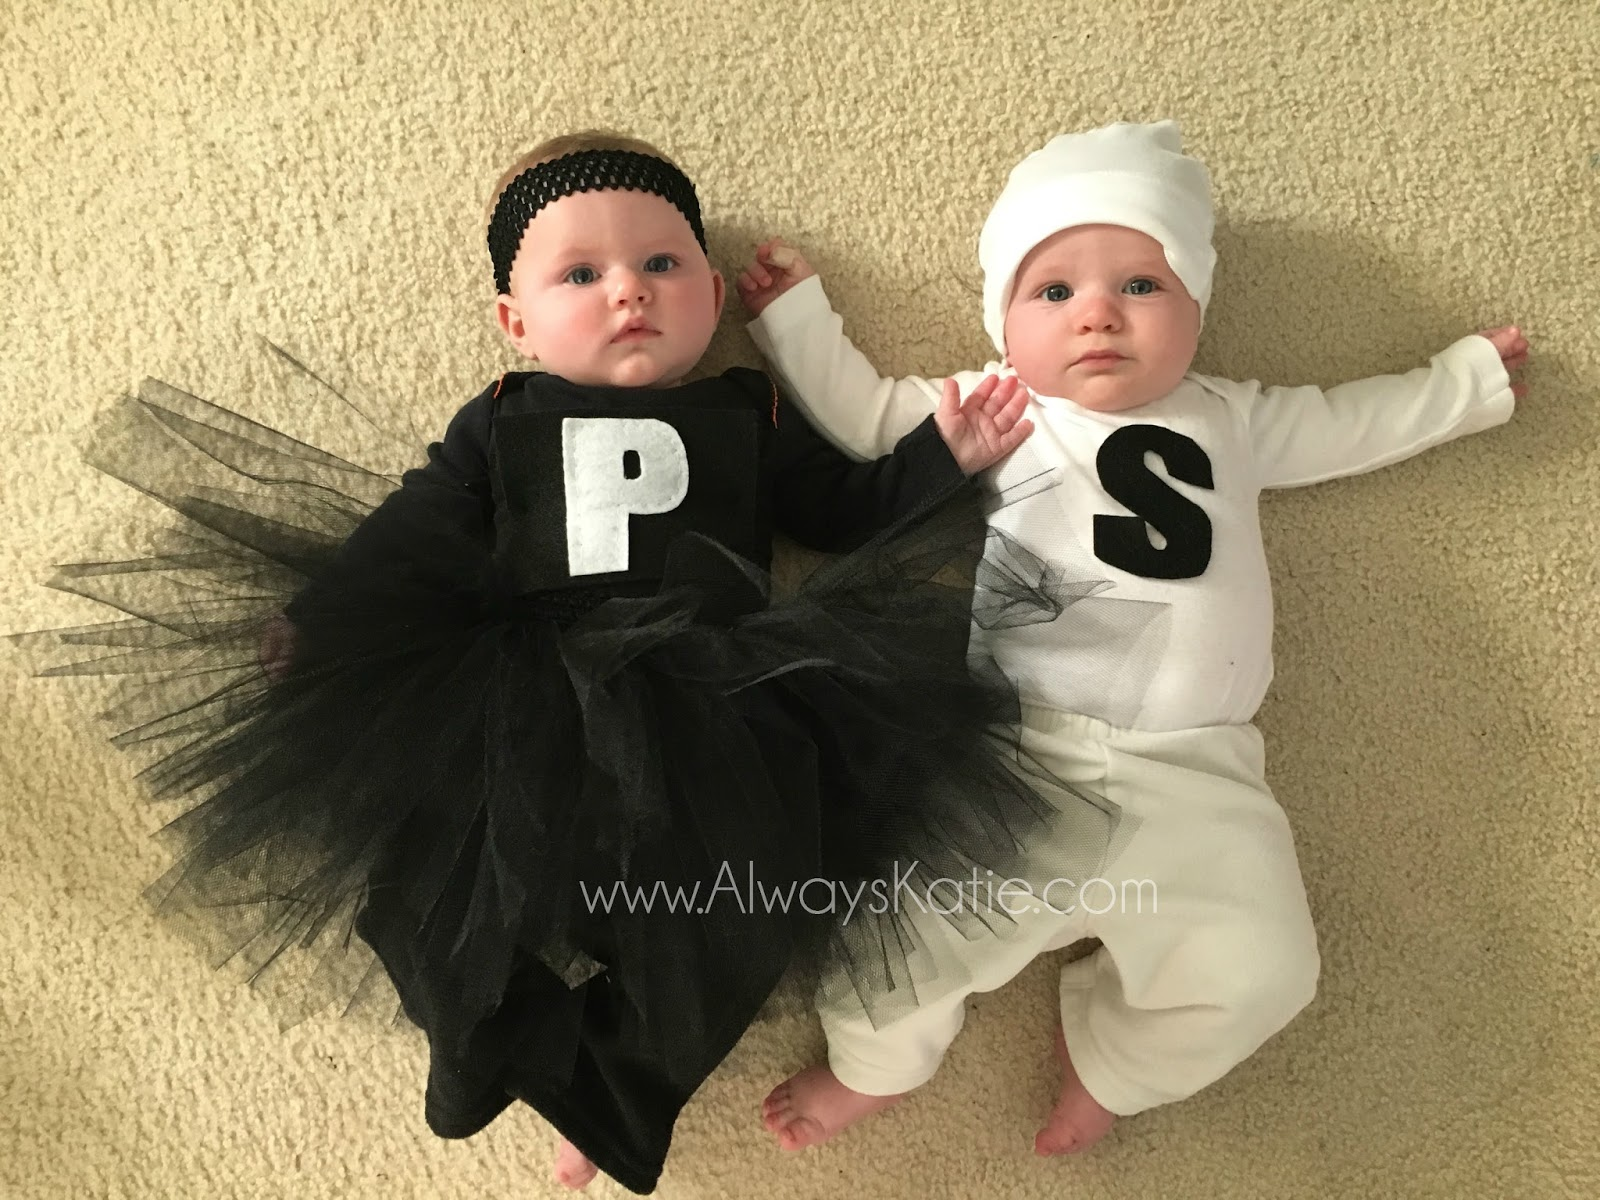 Always Katie Twin Halloween Costumes Salt and Pepper Shakers  sc 1 st  everythingsbettersprouted.com & Awesome Pictures Of Boy Girl Twins Costumes - Best Home Plans and ...